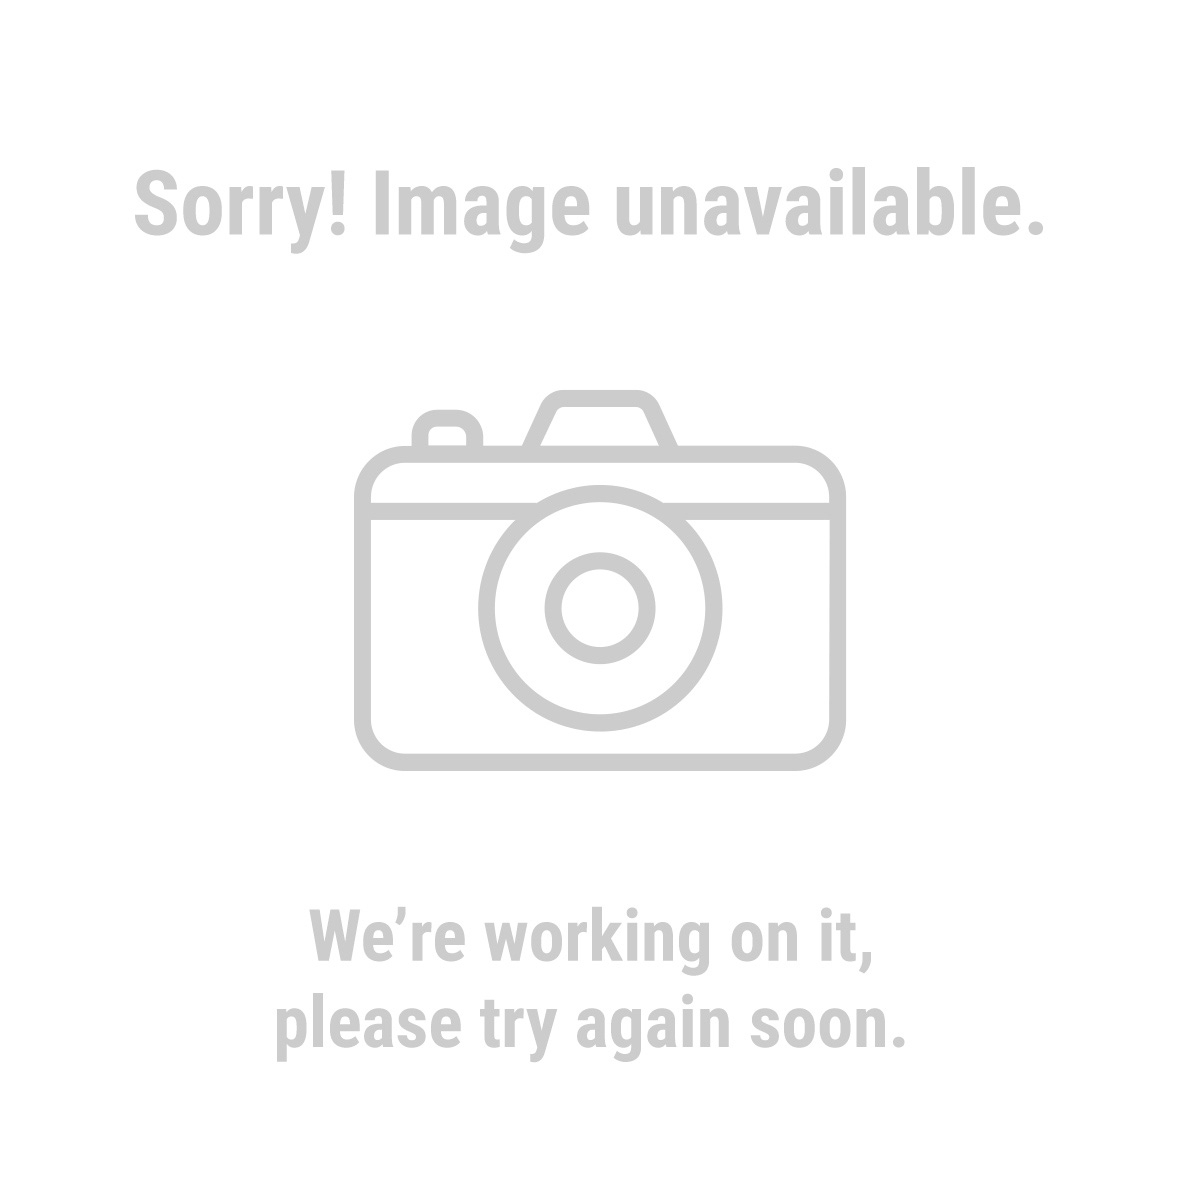 Haul-Master 61678 3/8 in. x 100 ft. Diamond Braid Rope